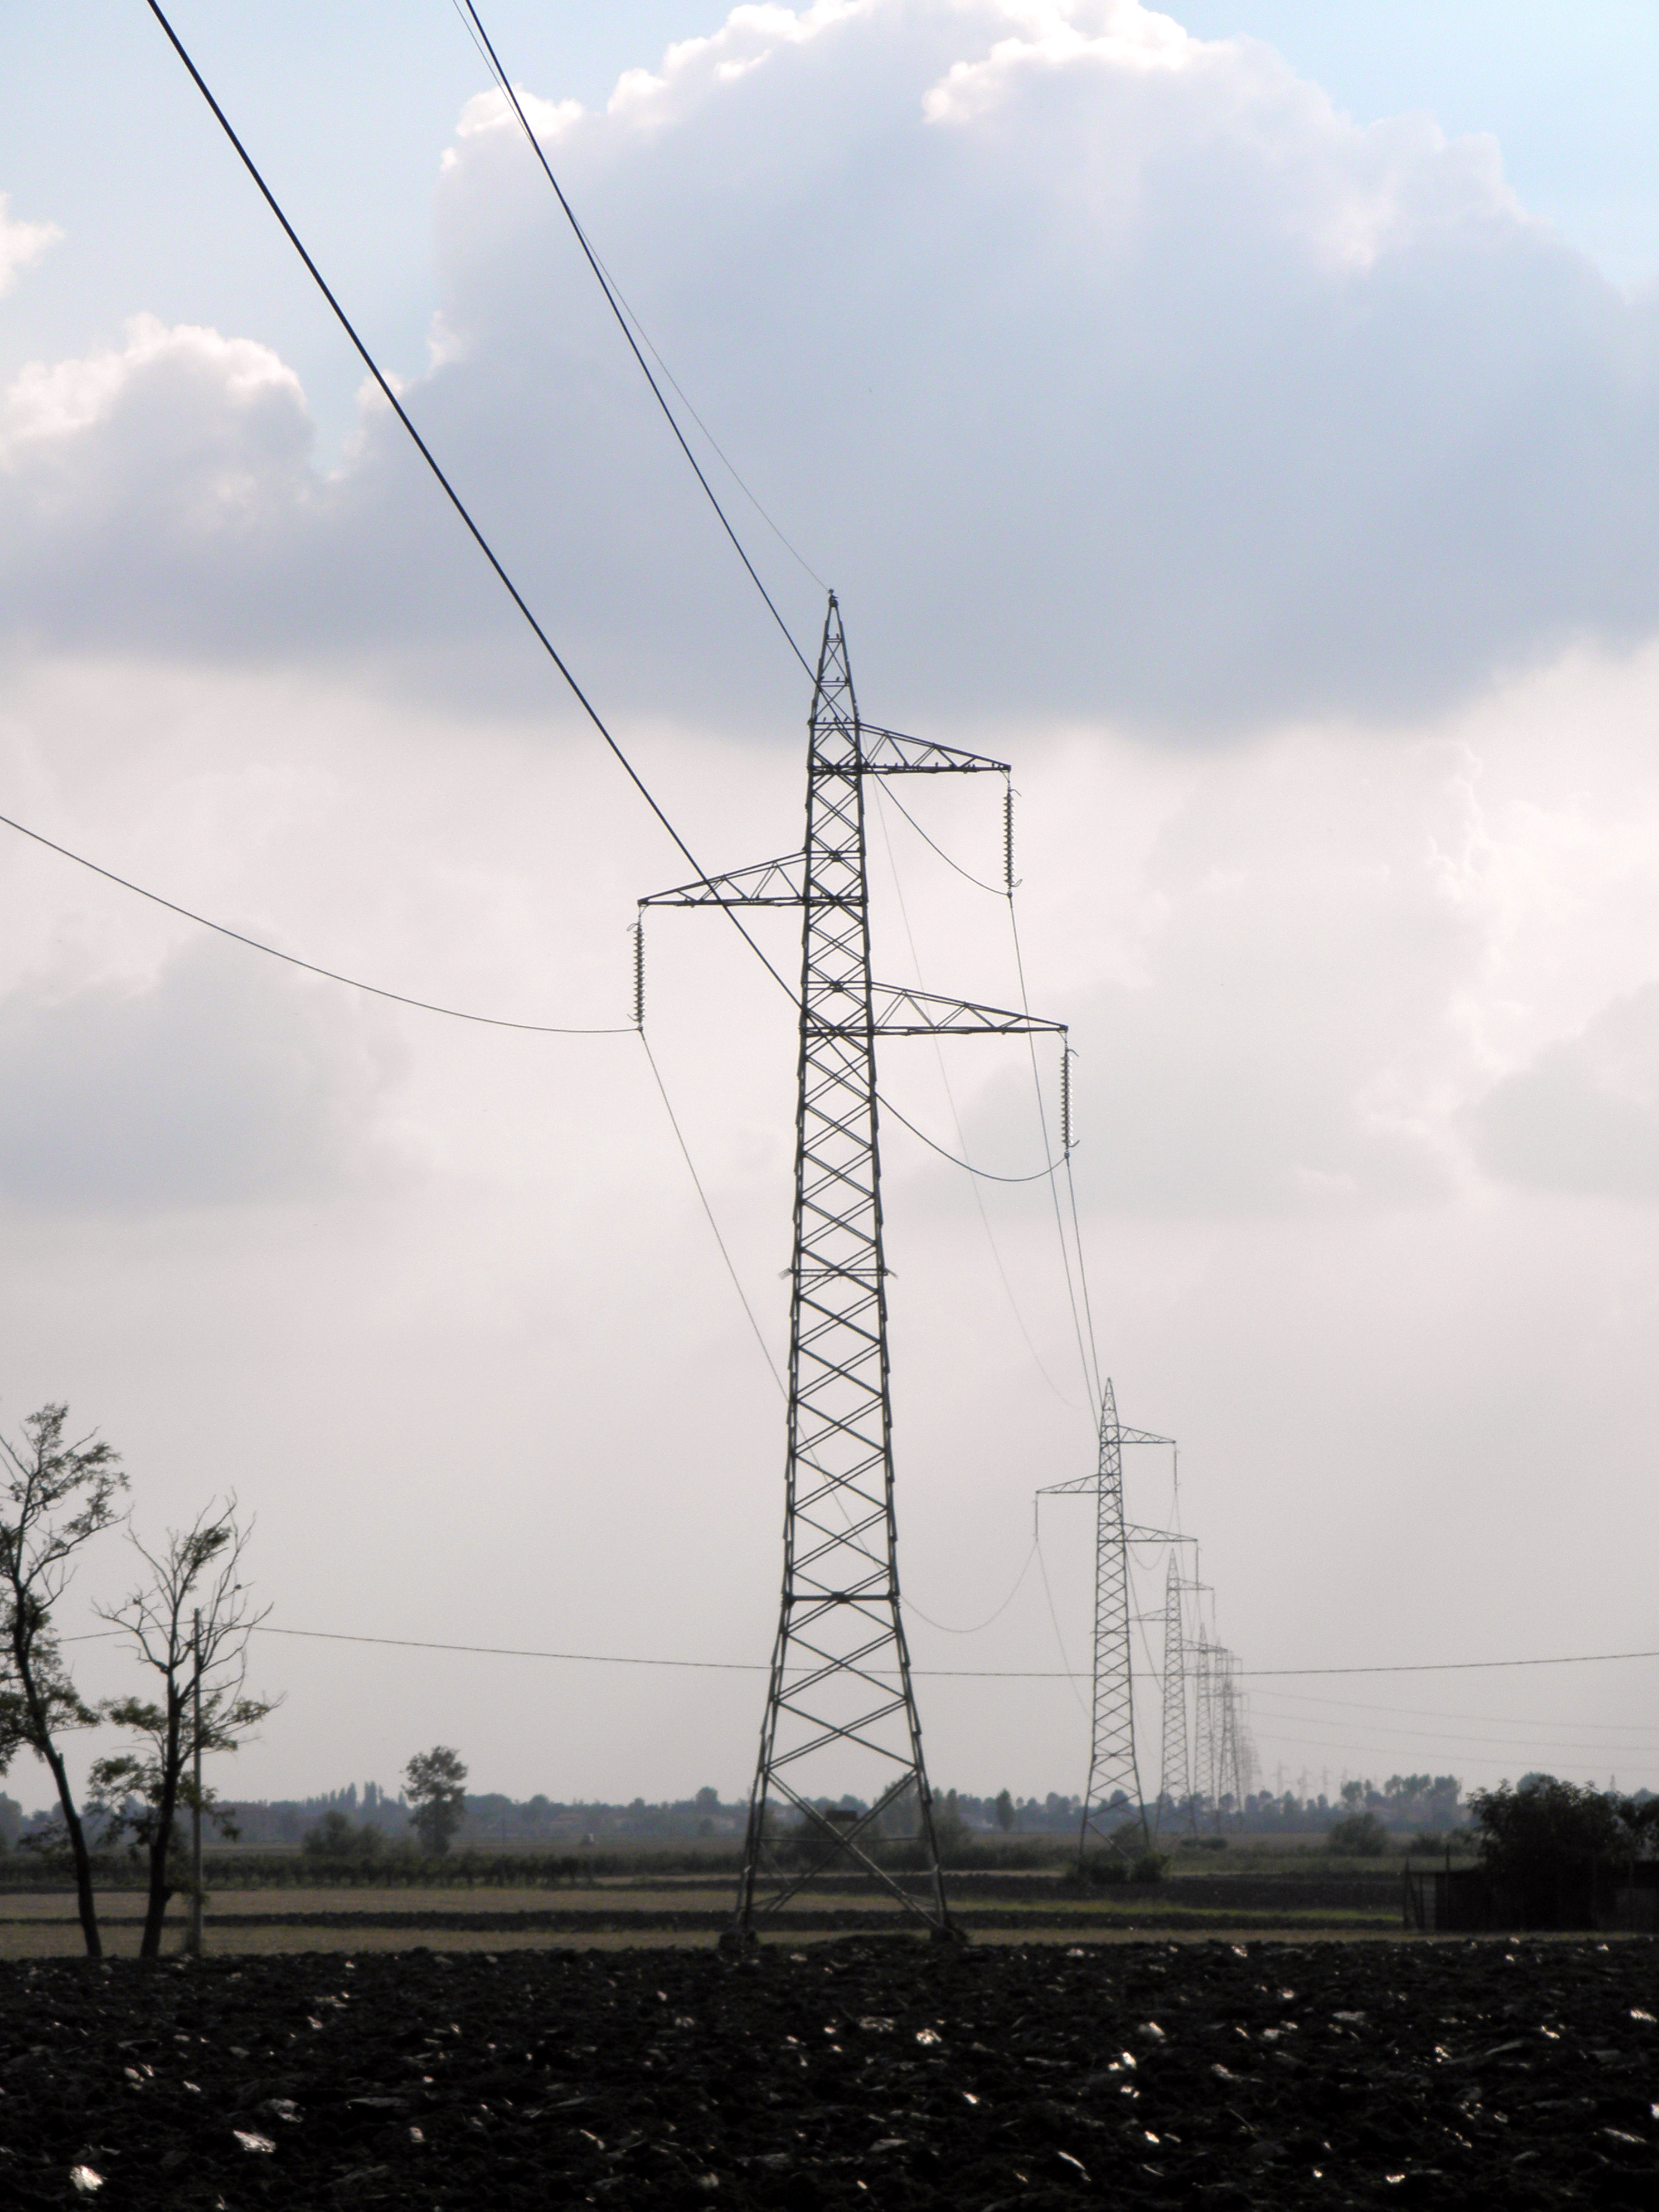 Overhead Power Line : Power line safety up to kv equipment operations